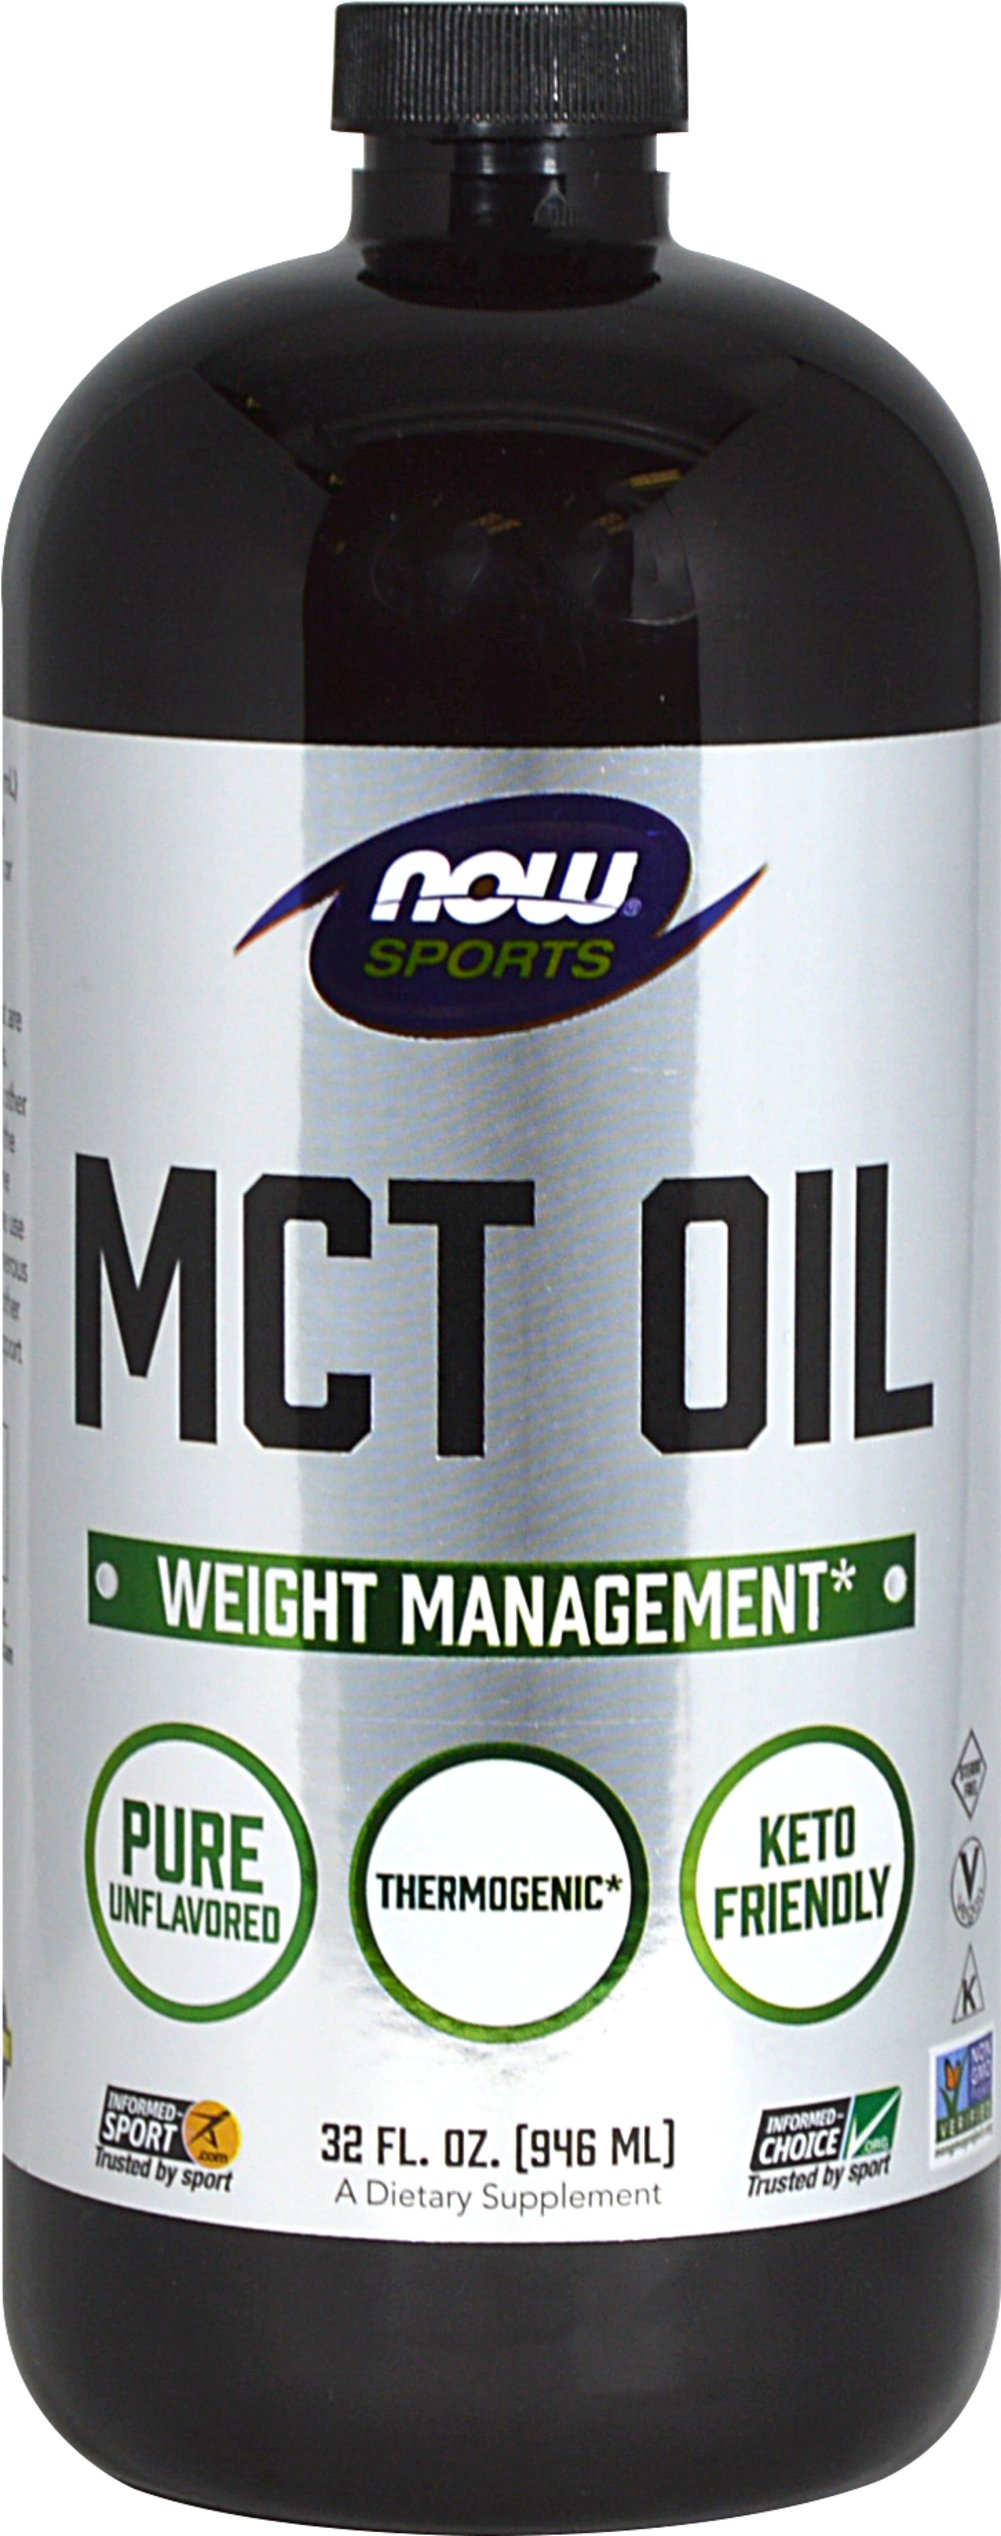 MCT Oil From the Manufacturer's Label:<br /><br />Medium Chain Triglycerides (MCT's) are fats that are naturally found in coconut and palm kernel oil.  MCT's are more easily and rapidly digested than other types of fats, as they require lower amounts of enzymes and bile acids for intestinal absorption.<br /><br />Manufactured by NOW® Foods. 32 fl oz Liquid  $20.99